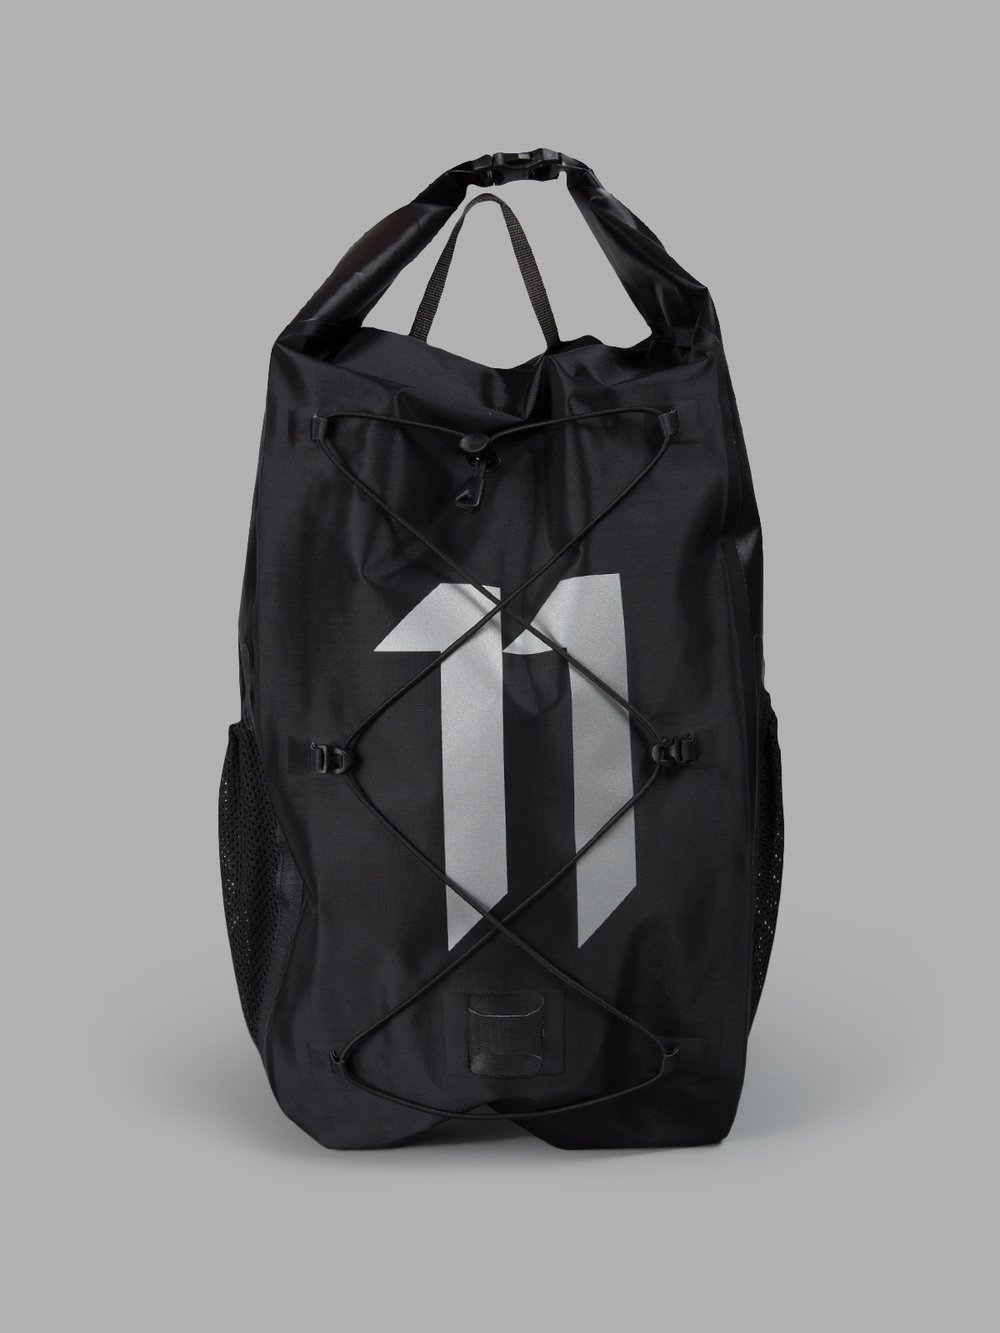 BORIS BIDJAN SABERI 11 BACKPACKS